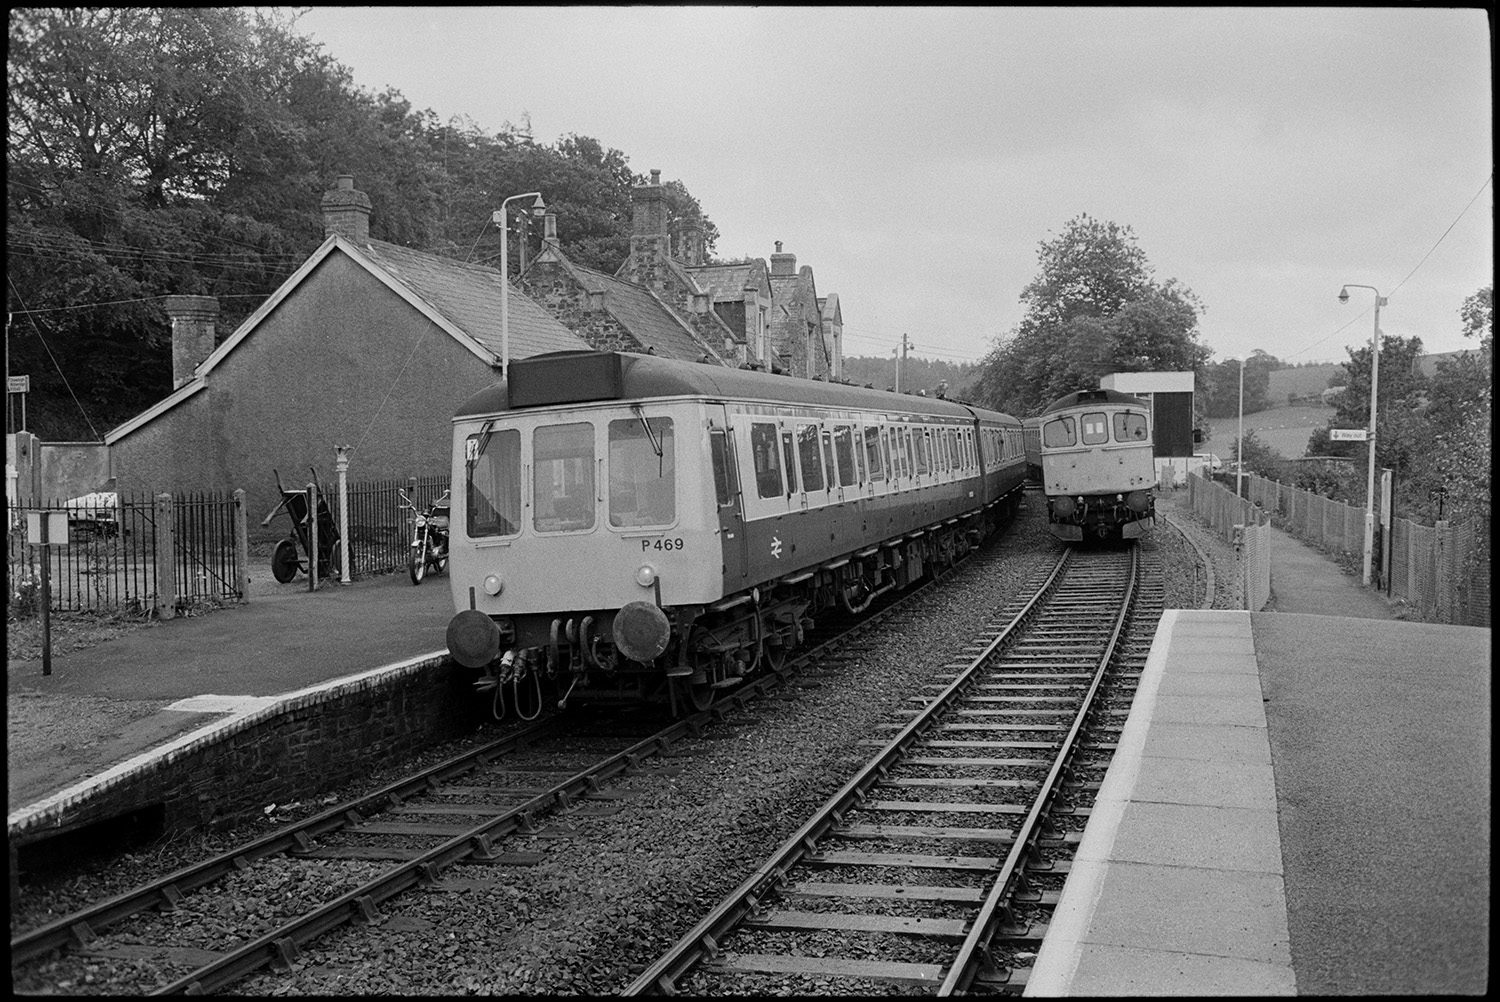 Train waiting at station other diesel train passing.<br /> [A diesel train waiting at Kings Nympton station for another diesel train to pass. Station buildings, platforms and trees can be seen in the background. A motorbike is parked on the platform.]